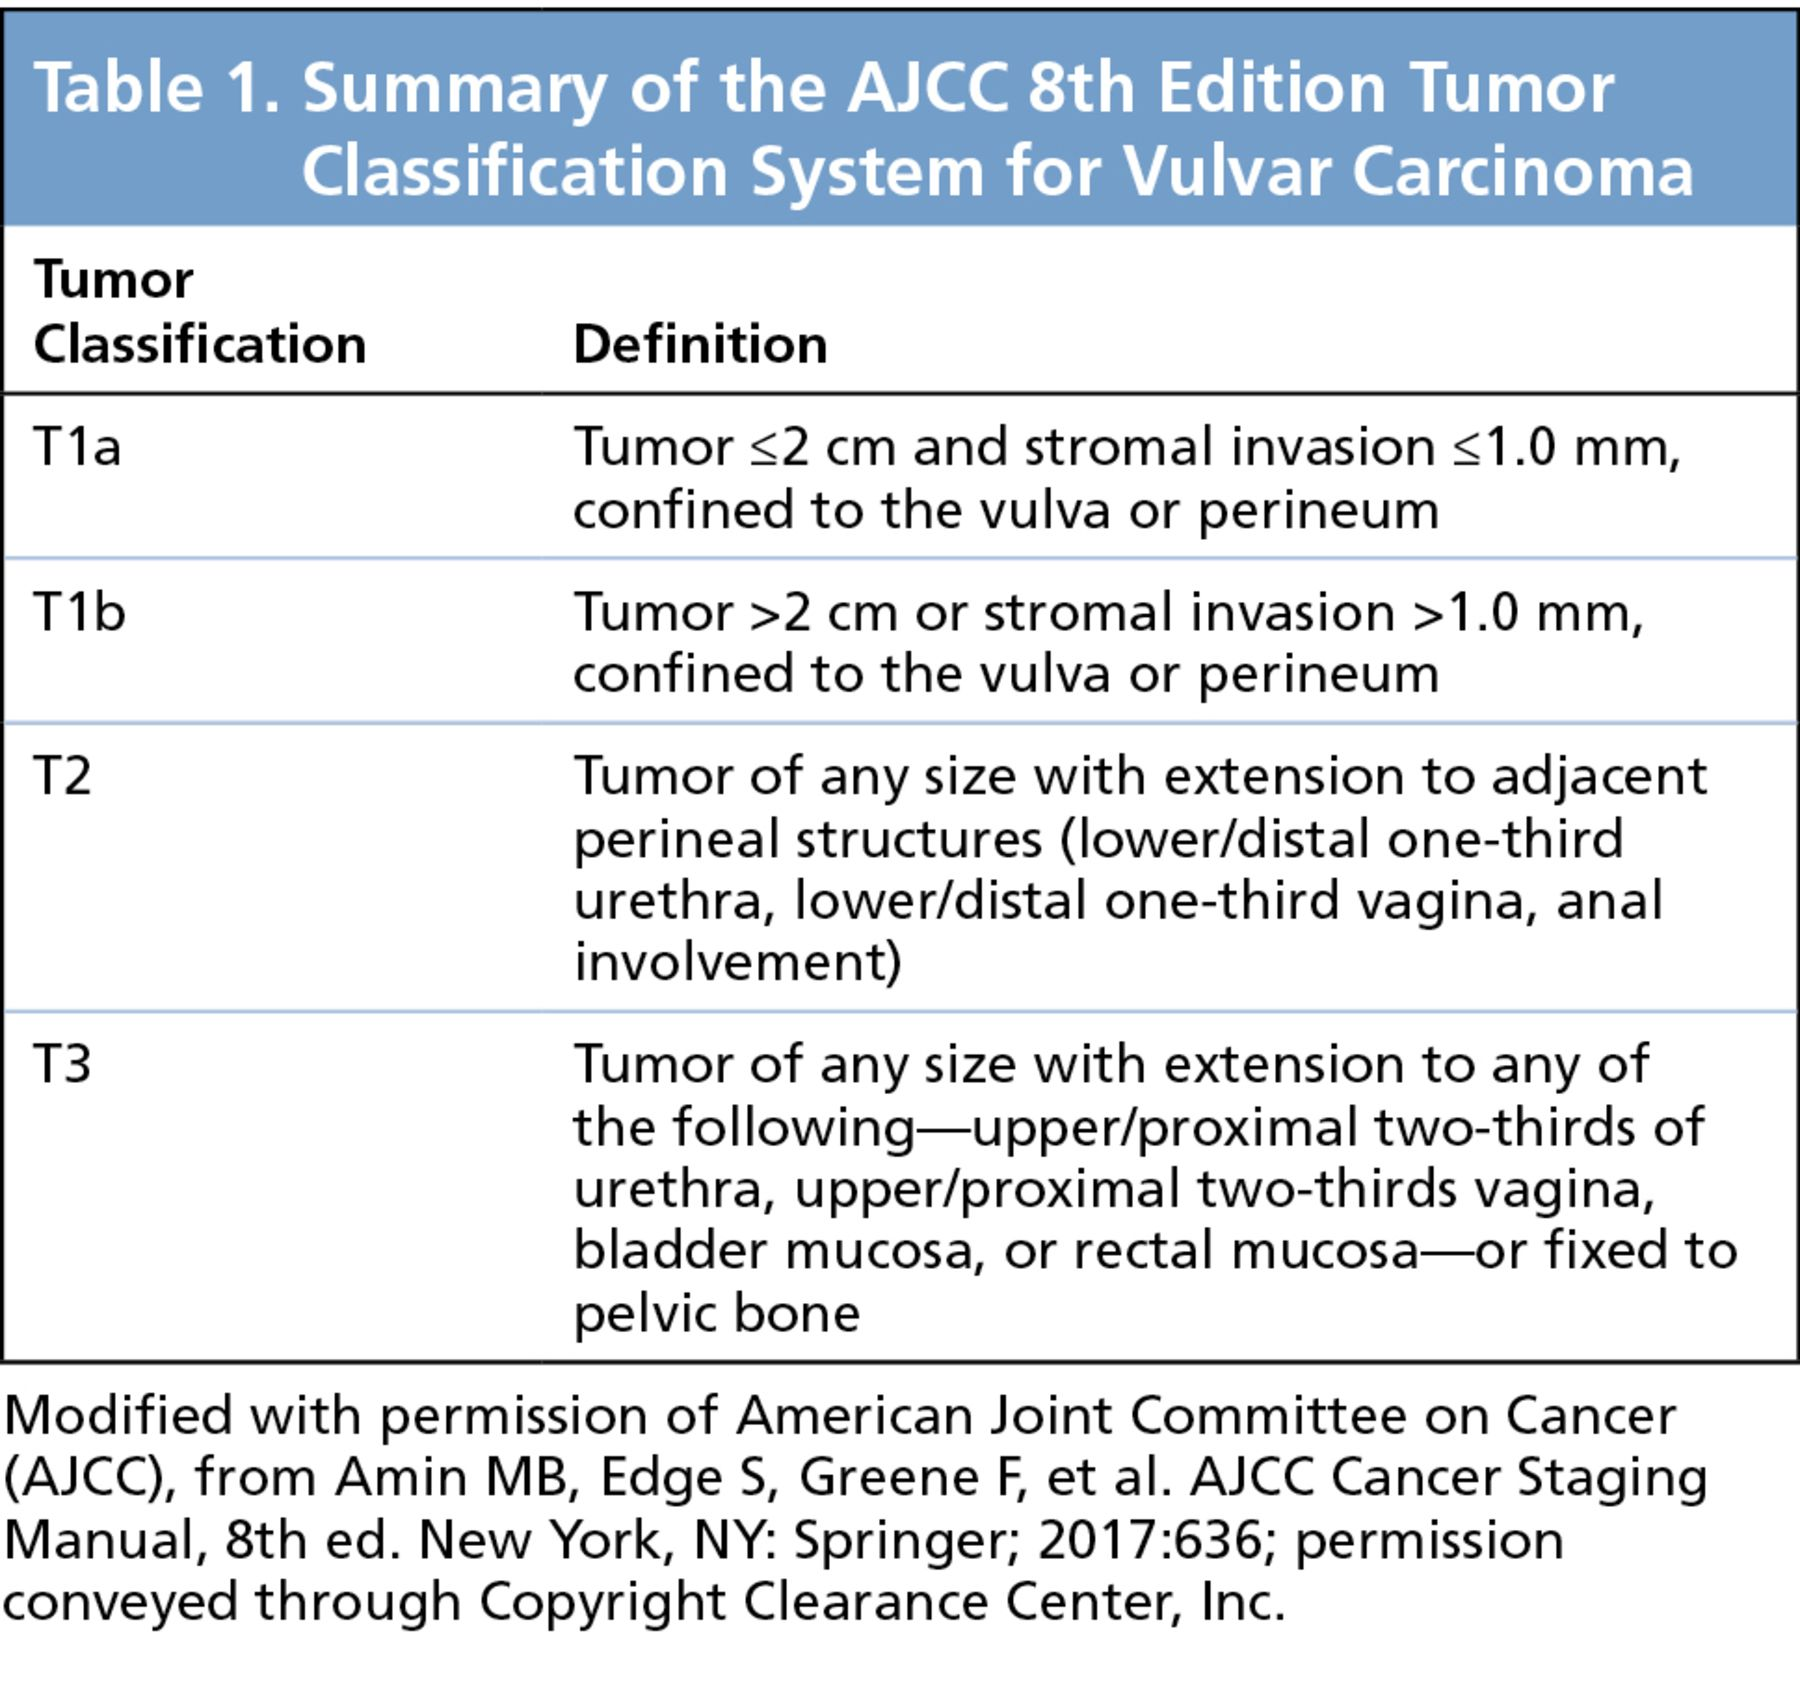 Evaluation of AJCC and an Alternative Tumor Classification